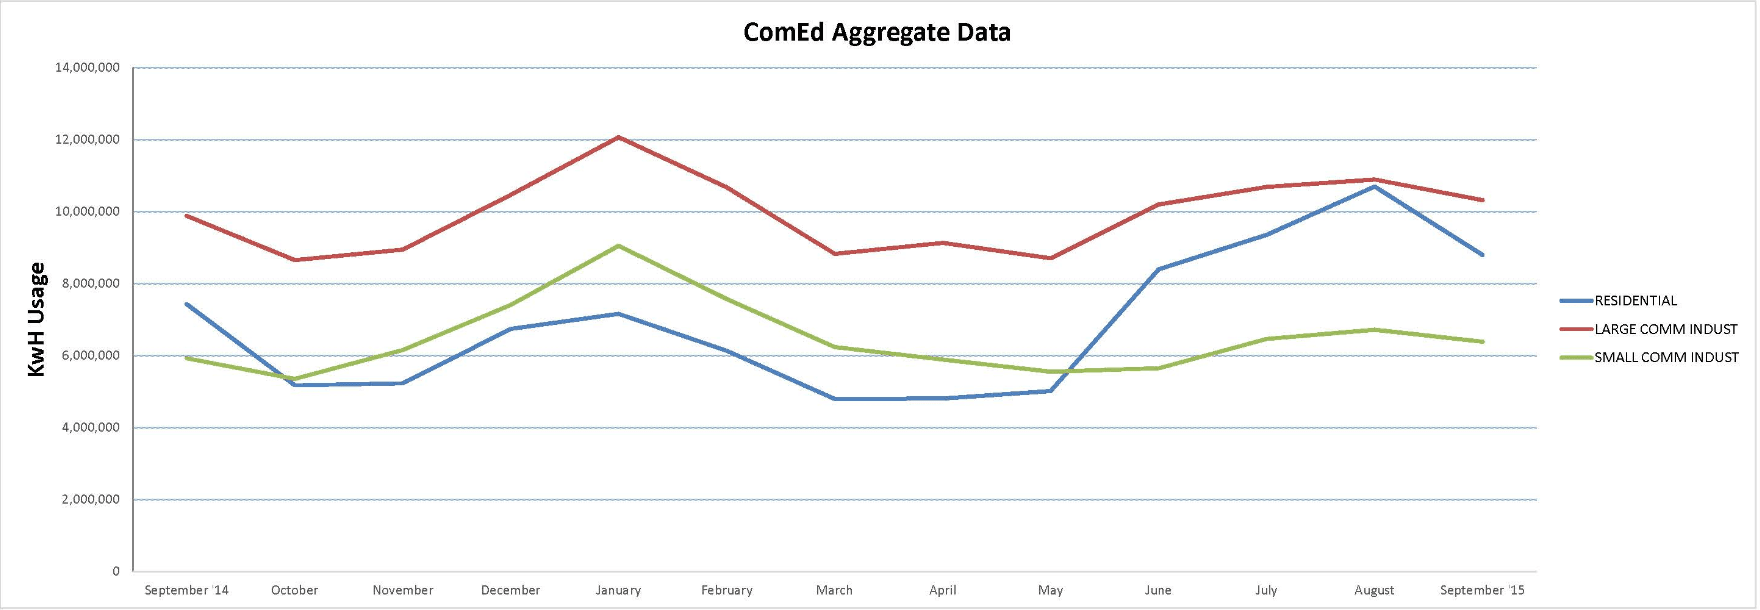 ComEd Aggregate Energy Data